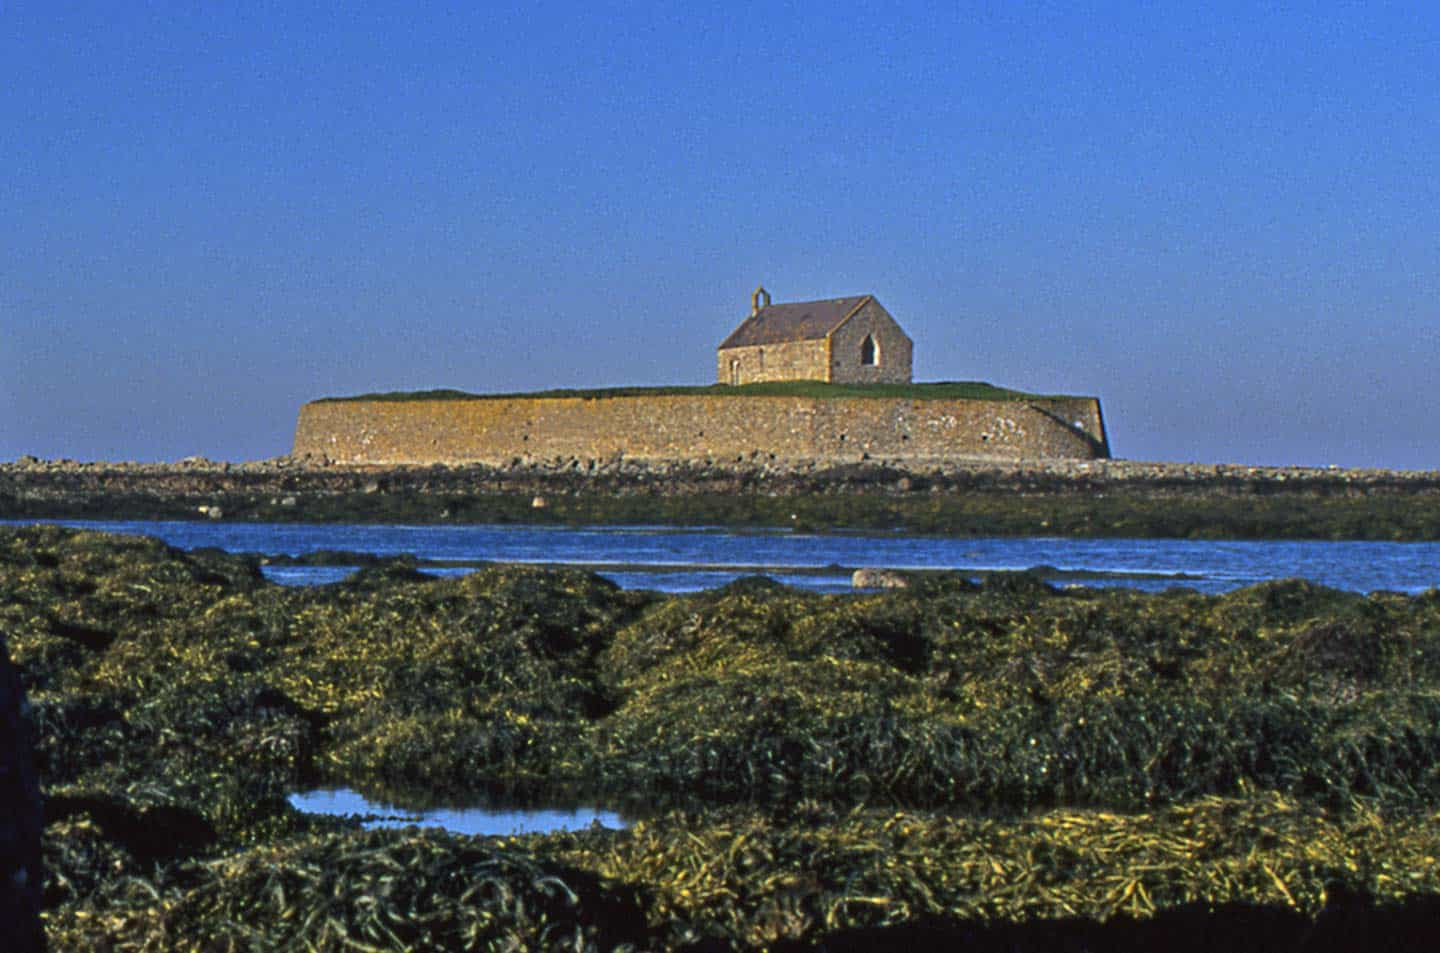 Image of church on island at Porth Cwyfan, Anglesey